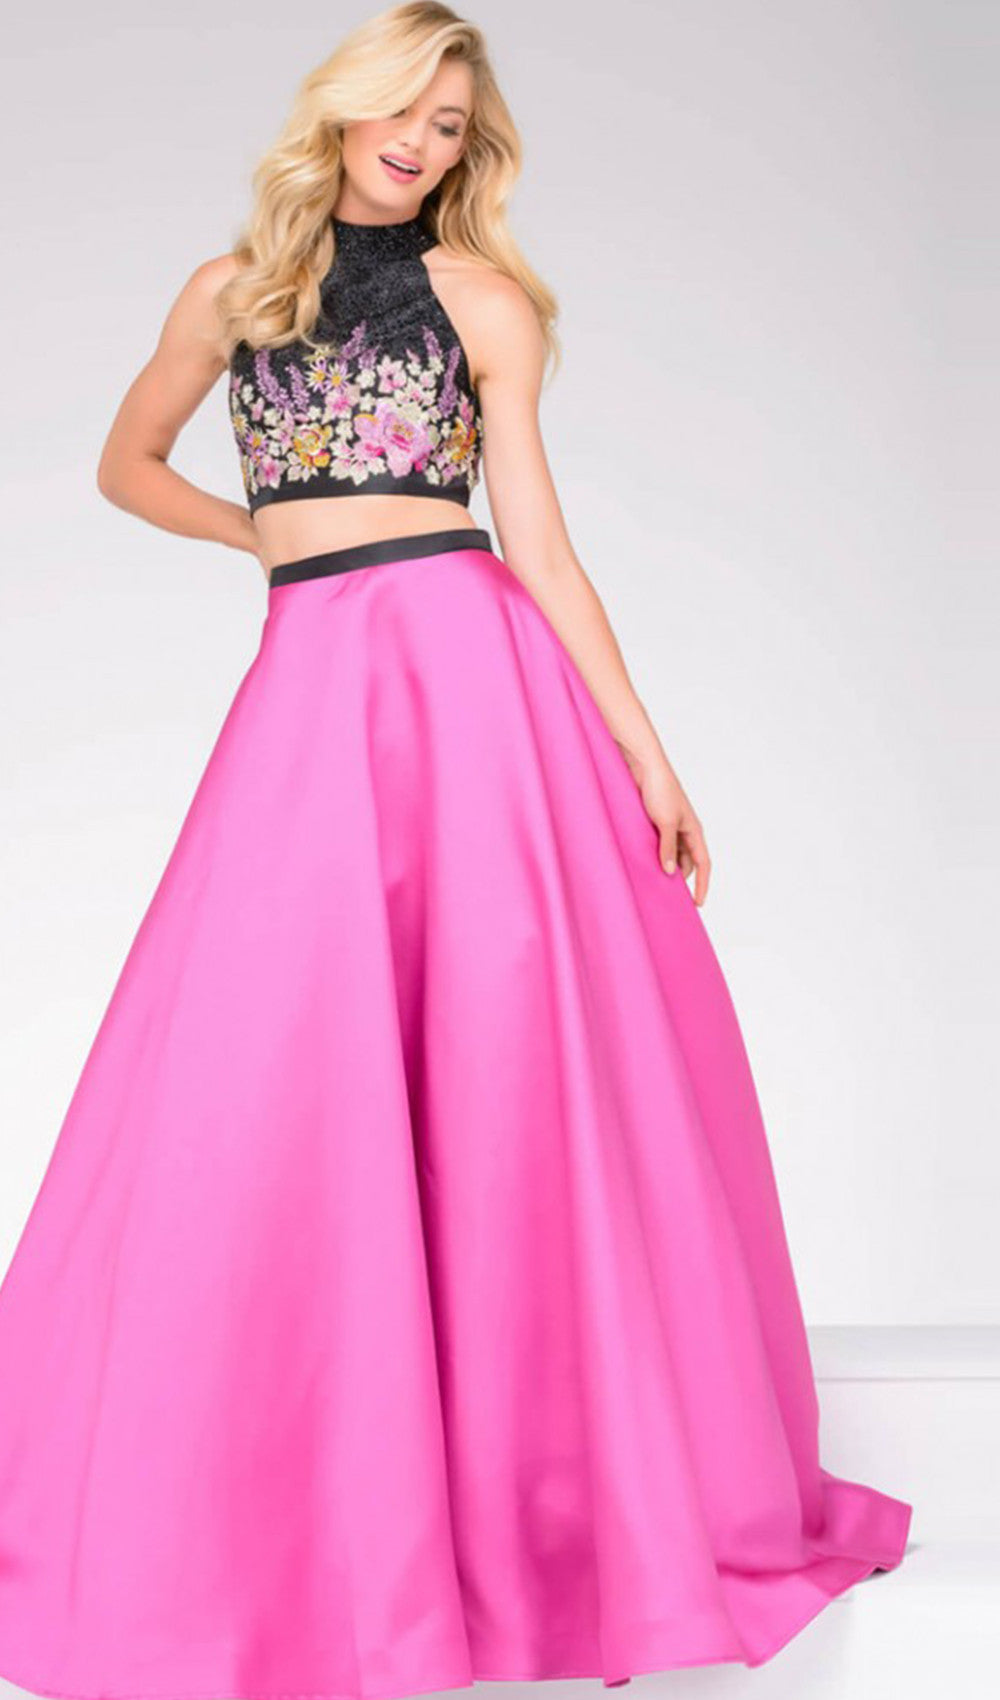 Gorgeous Contrasting Prom Dress | Jovani - STYLE 59350 | Schaffer's Bridal in Des Moines, Iowa